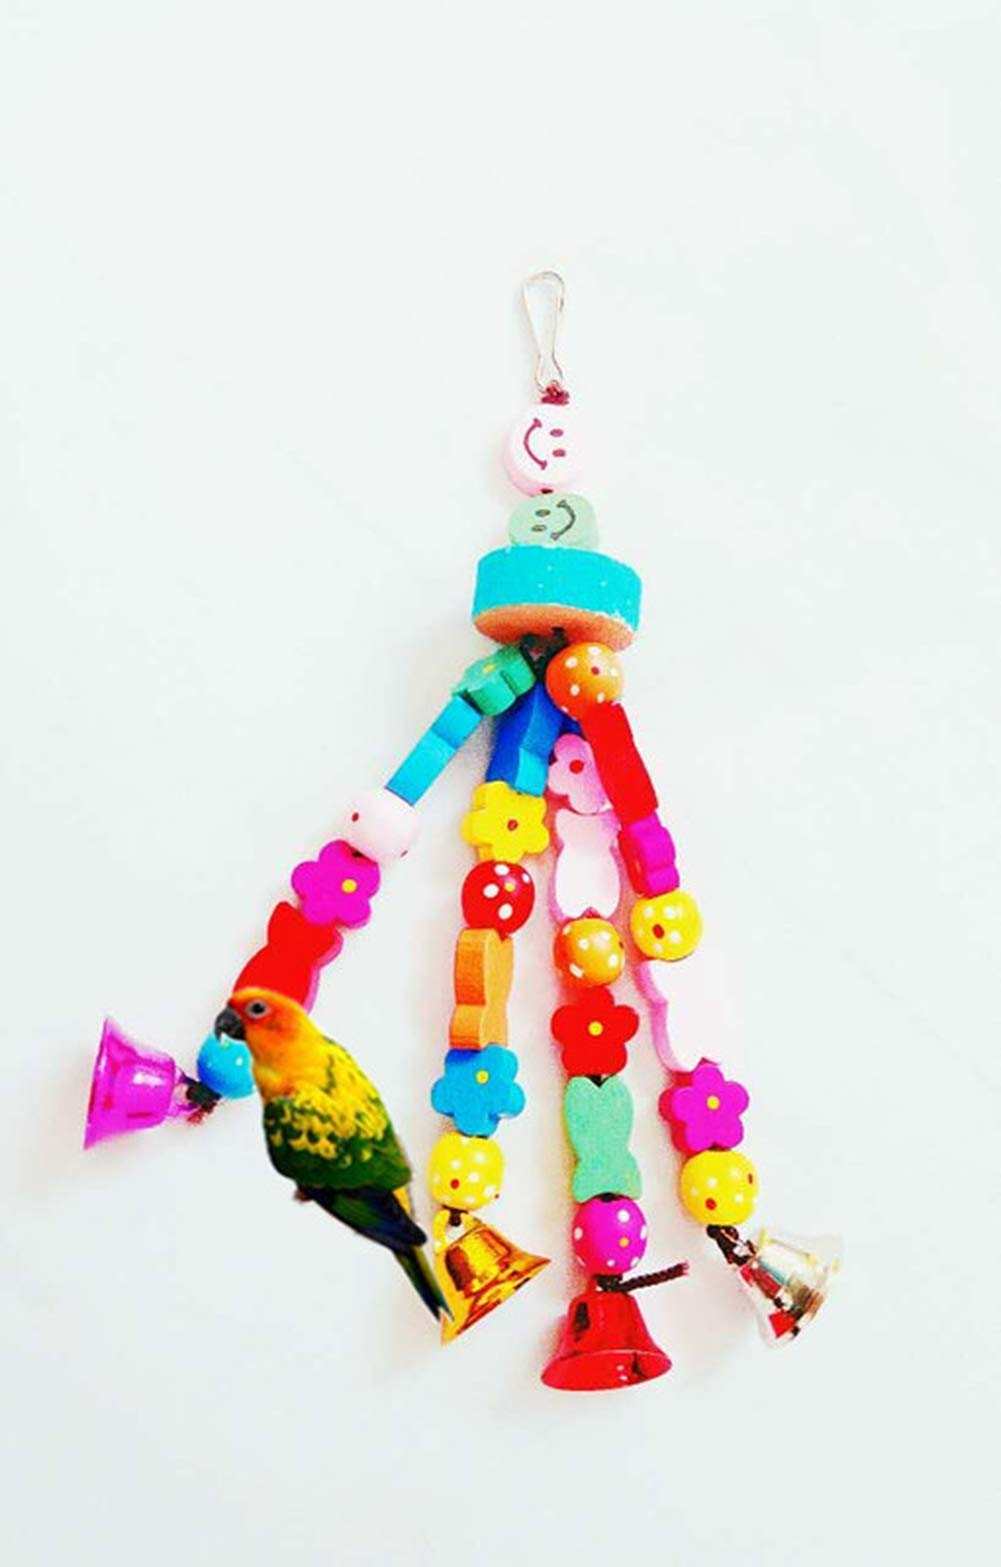 Yevison Bird Bell Frosted Molar Bells String Wooden Toys bite Parrot Swing Stand Ladder Ladder Bird cage Supplies by Yevison